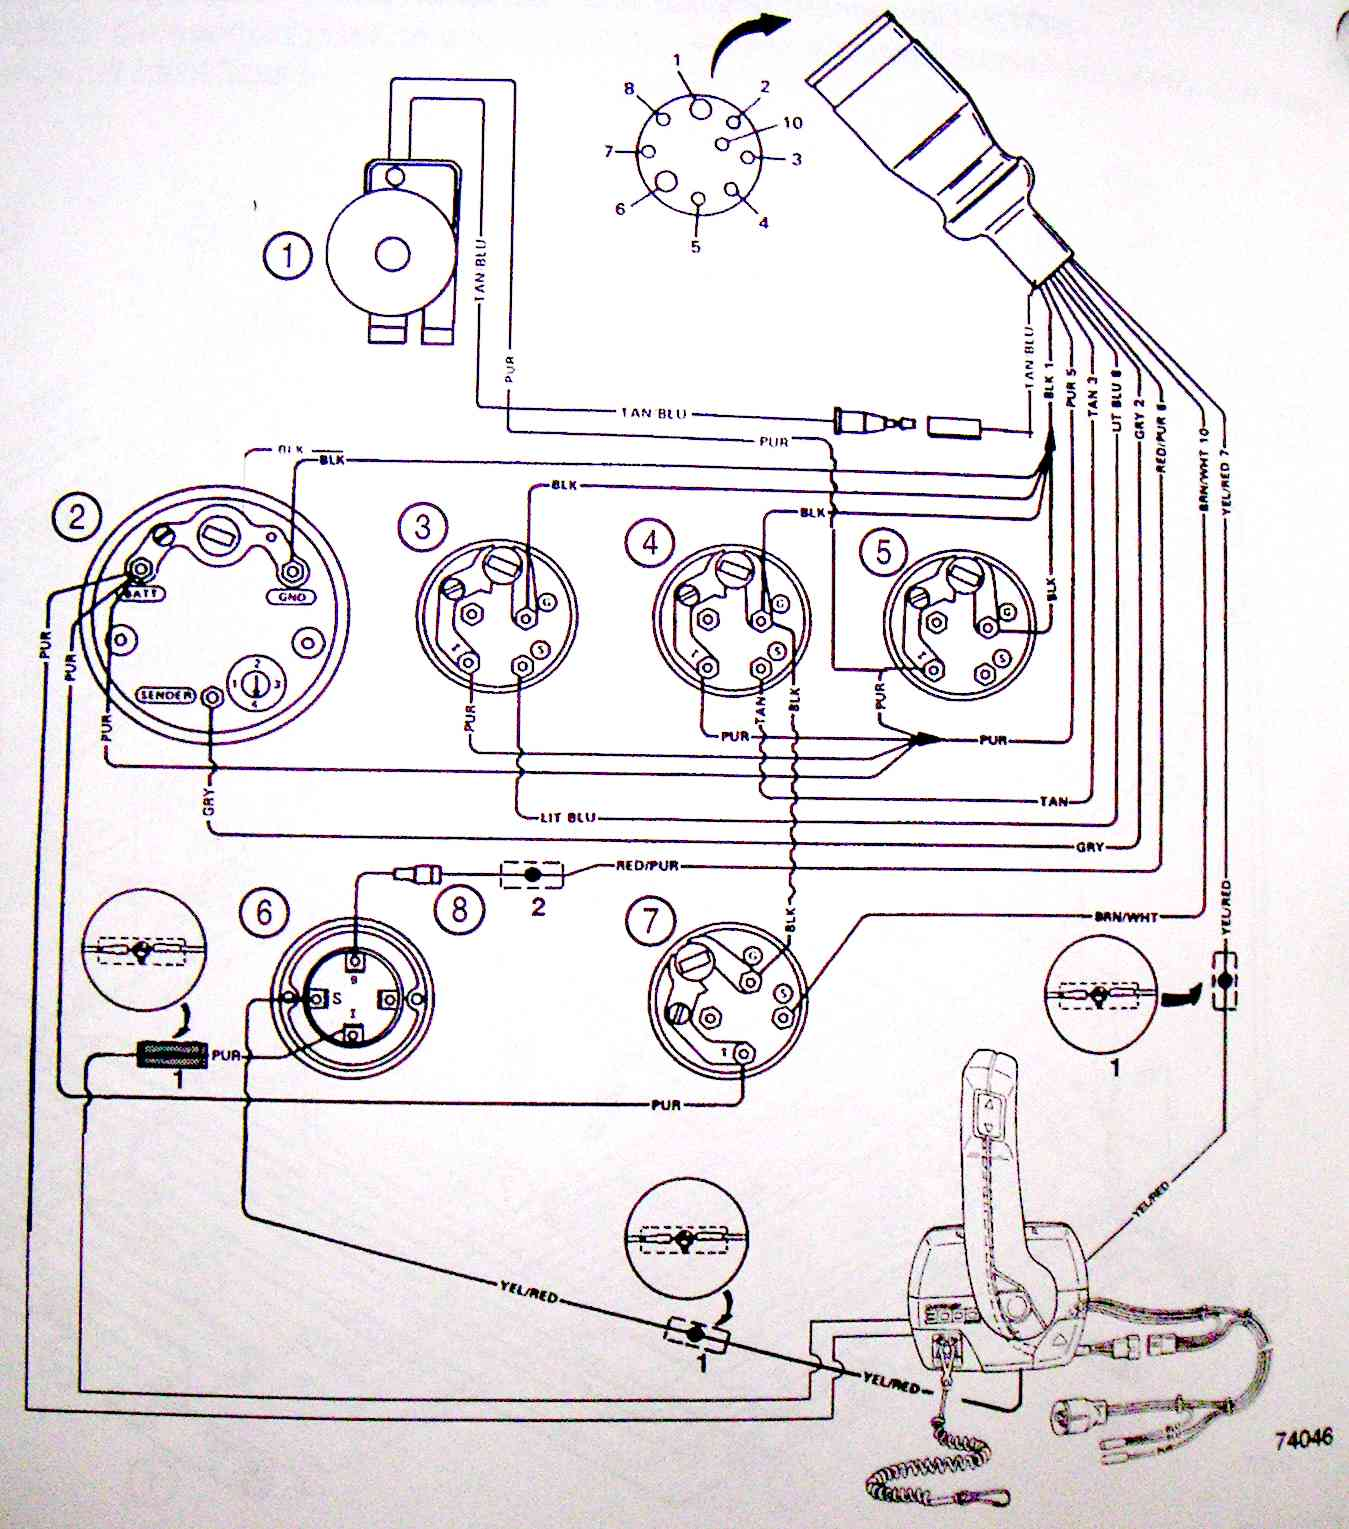 BoatHarness74046 100 [ marine tachometer wiring diagram ] how to install a mercury outboard gauge wiring diagram at gsmx.co